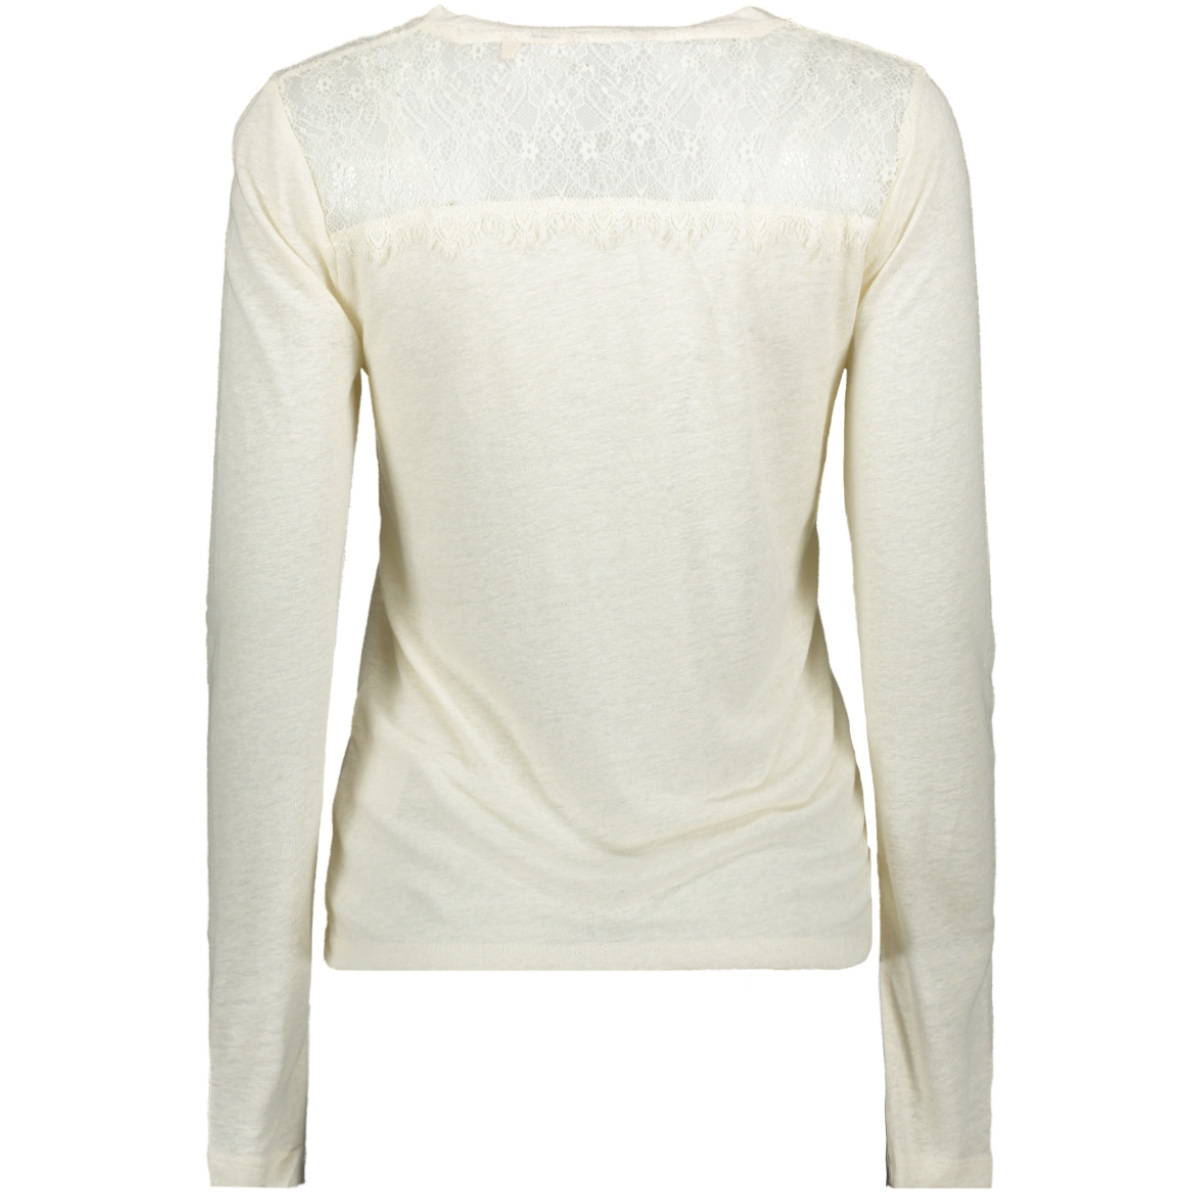 lace back graphic top w6000011a superdry t-shirt off white